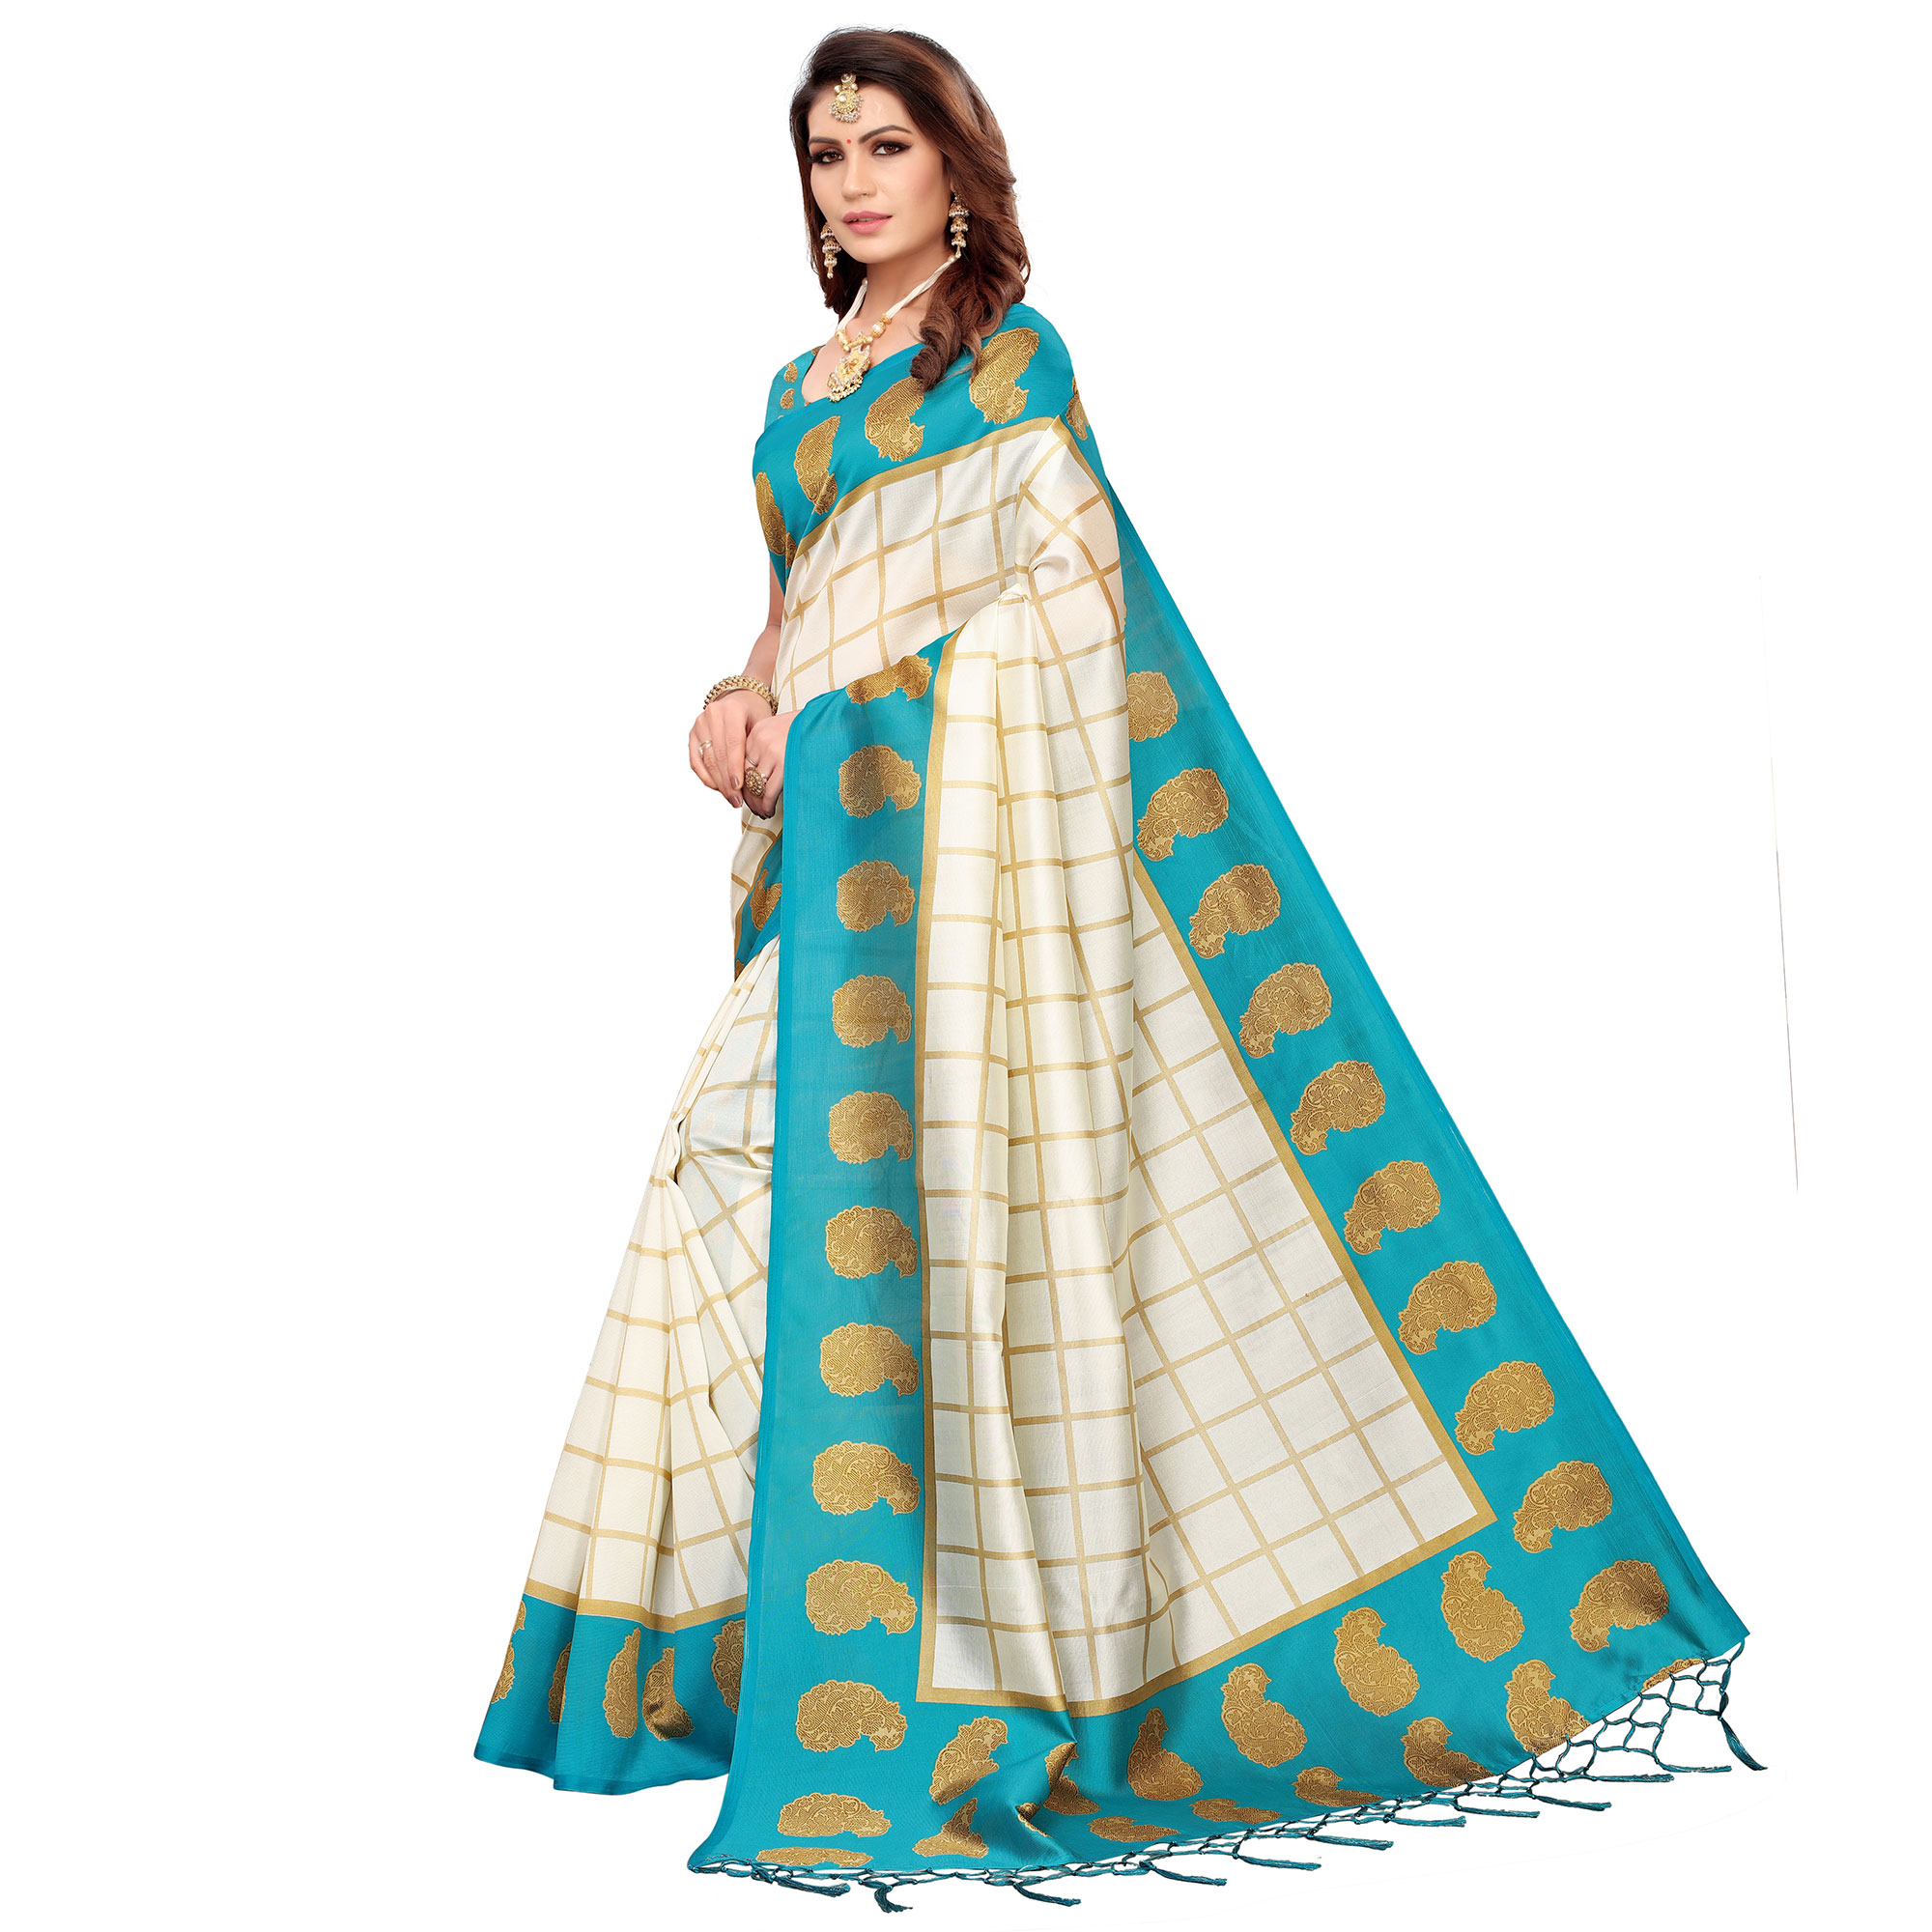 Amazing Off White-Turquoise Blue Colored Festive Wear Printed Mysore Silk Saree